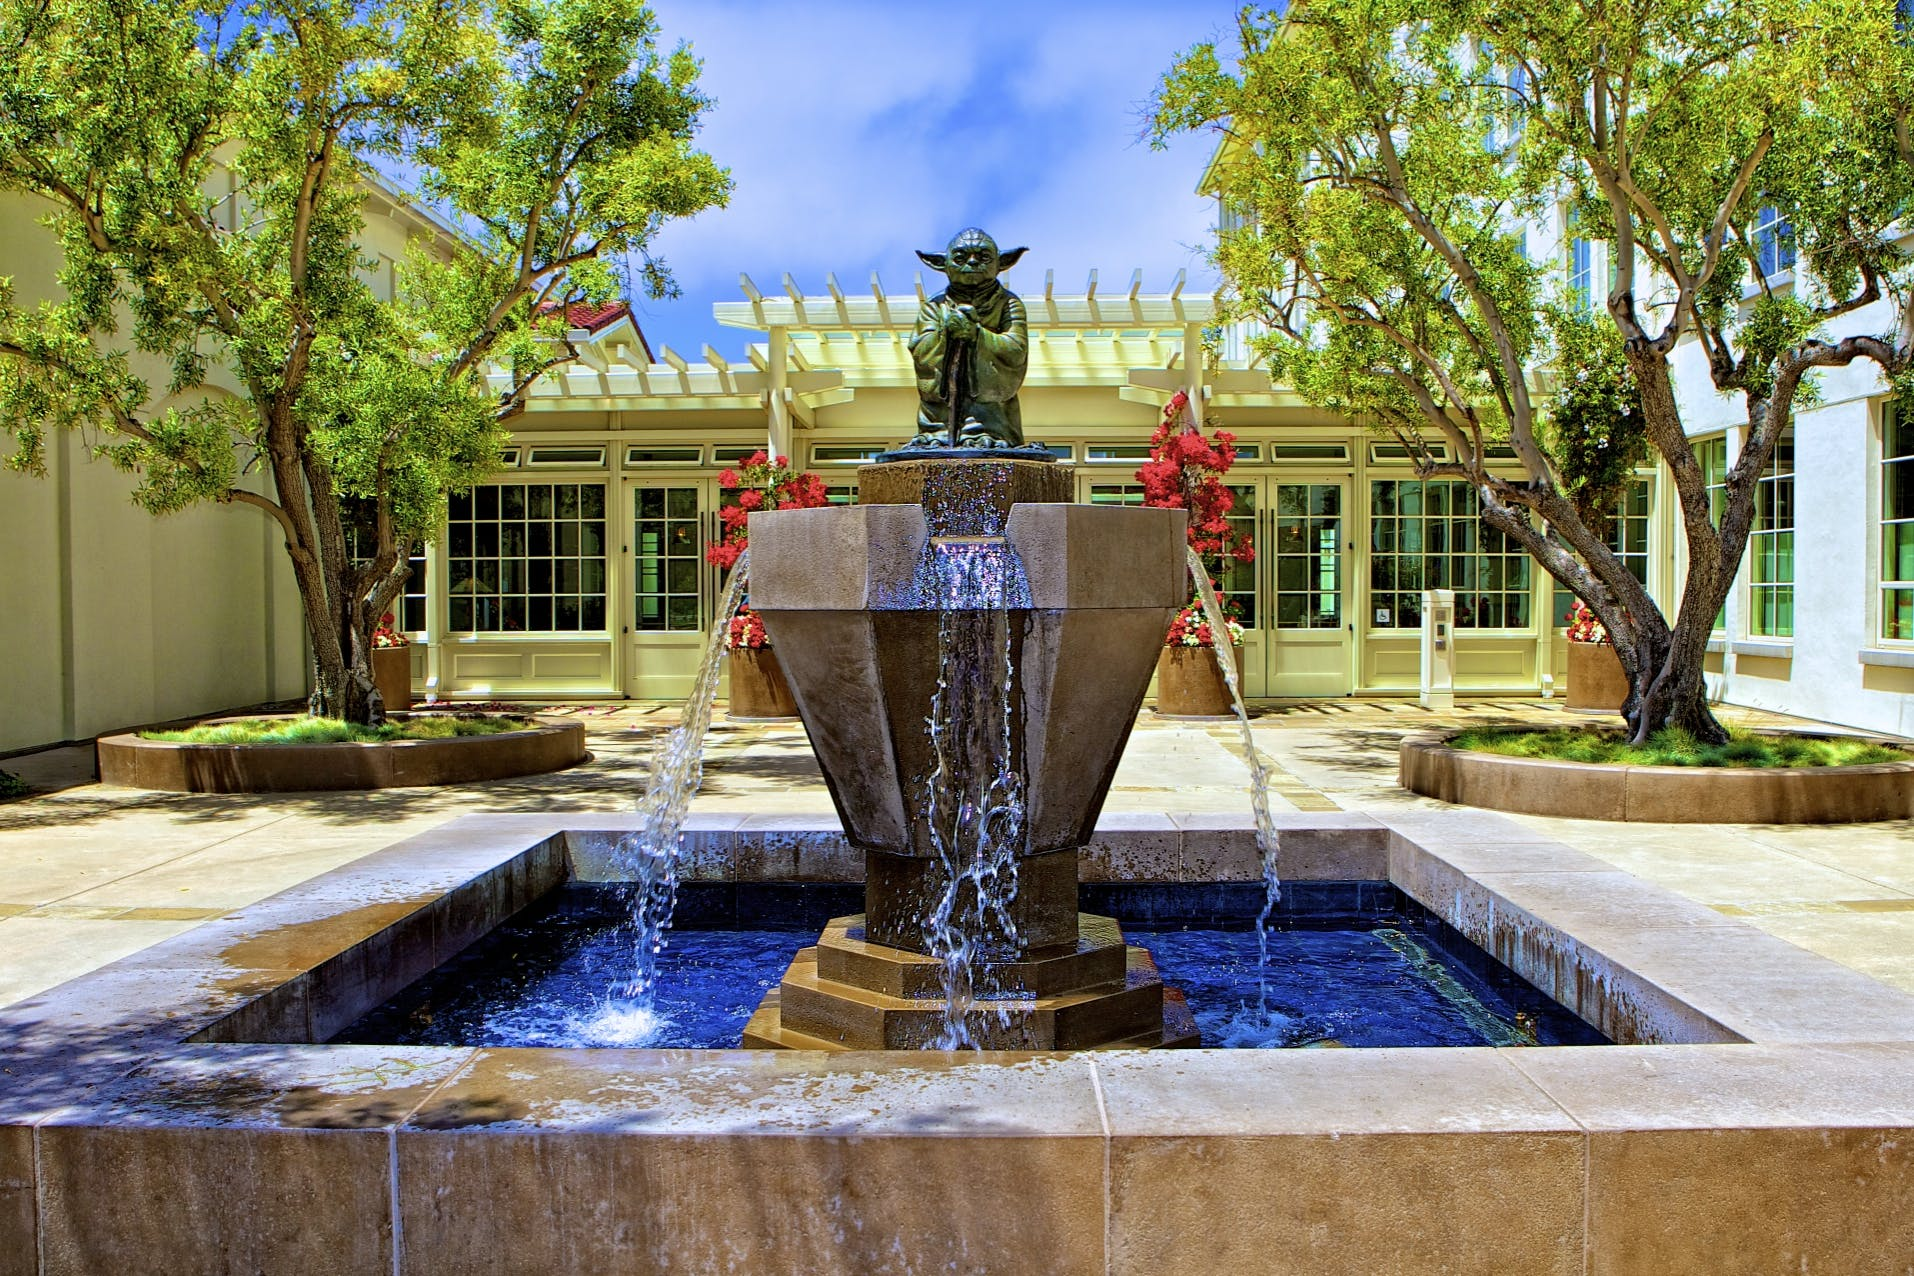 Fountain With Master Yoda Statue